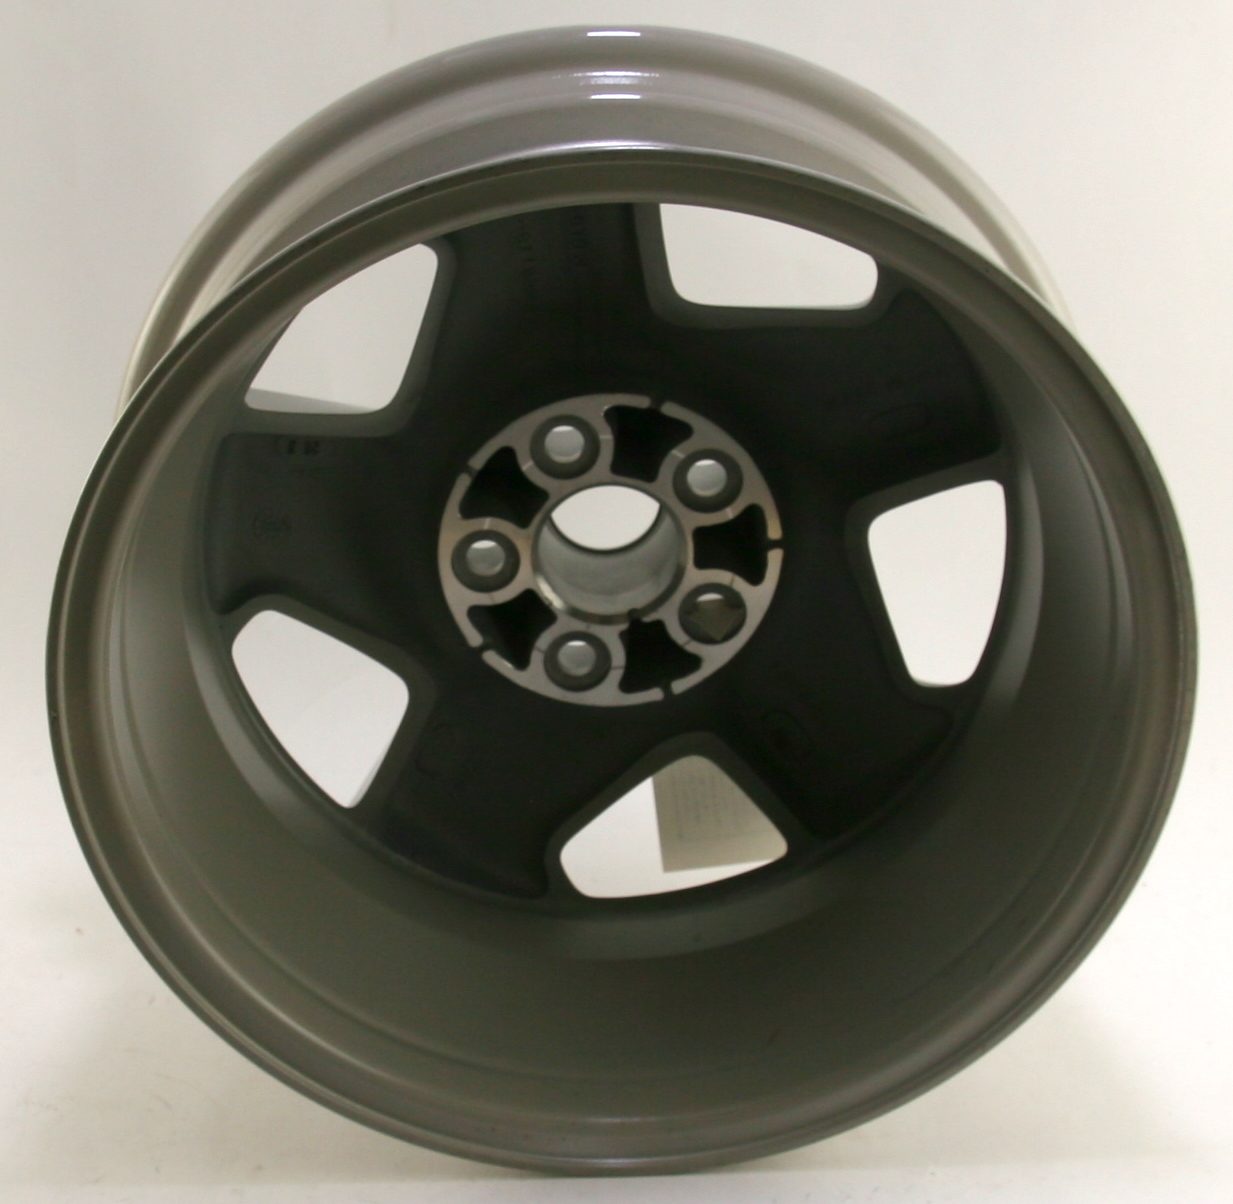 "~ New OEM 12360421 15"" Factory Wheel 95-99 Pontiac Sunfire Fast Free Shipping - image 2"